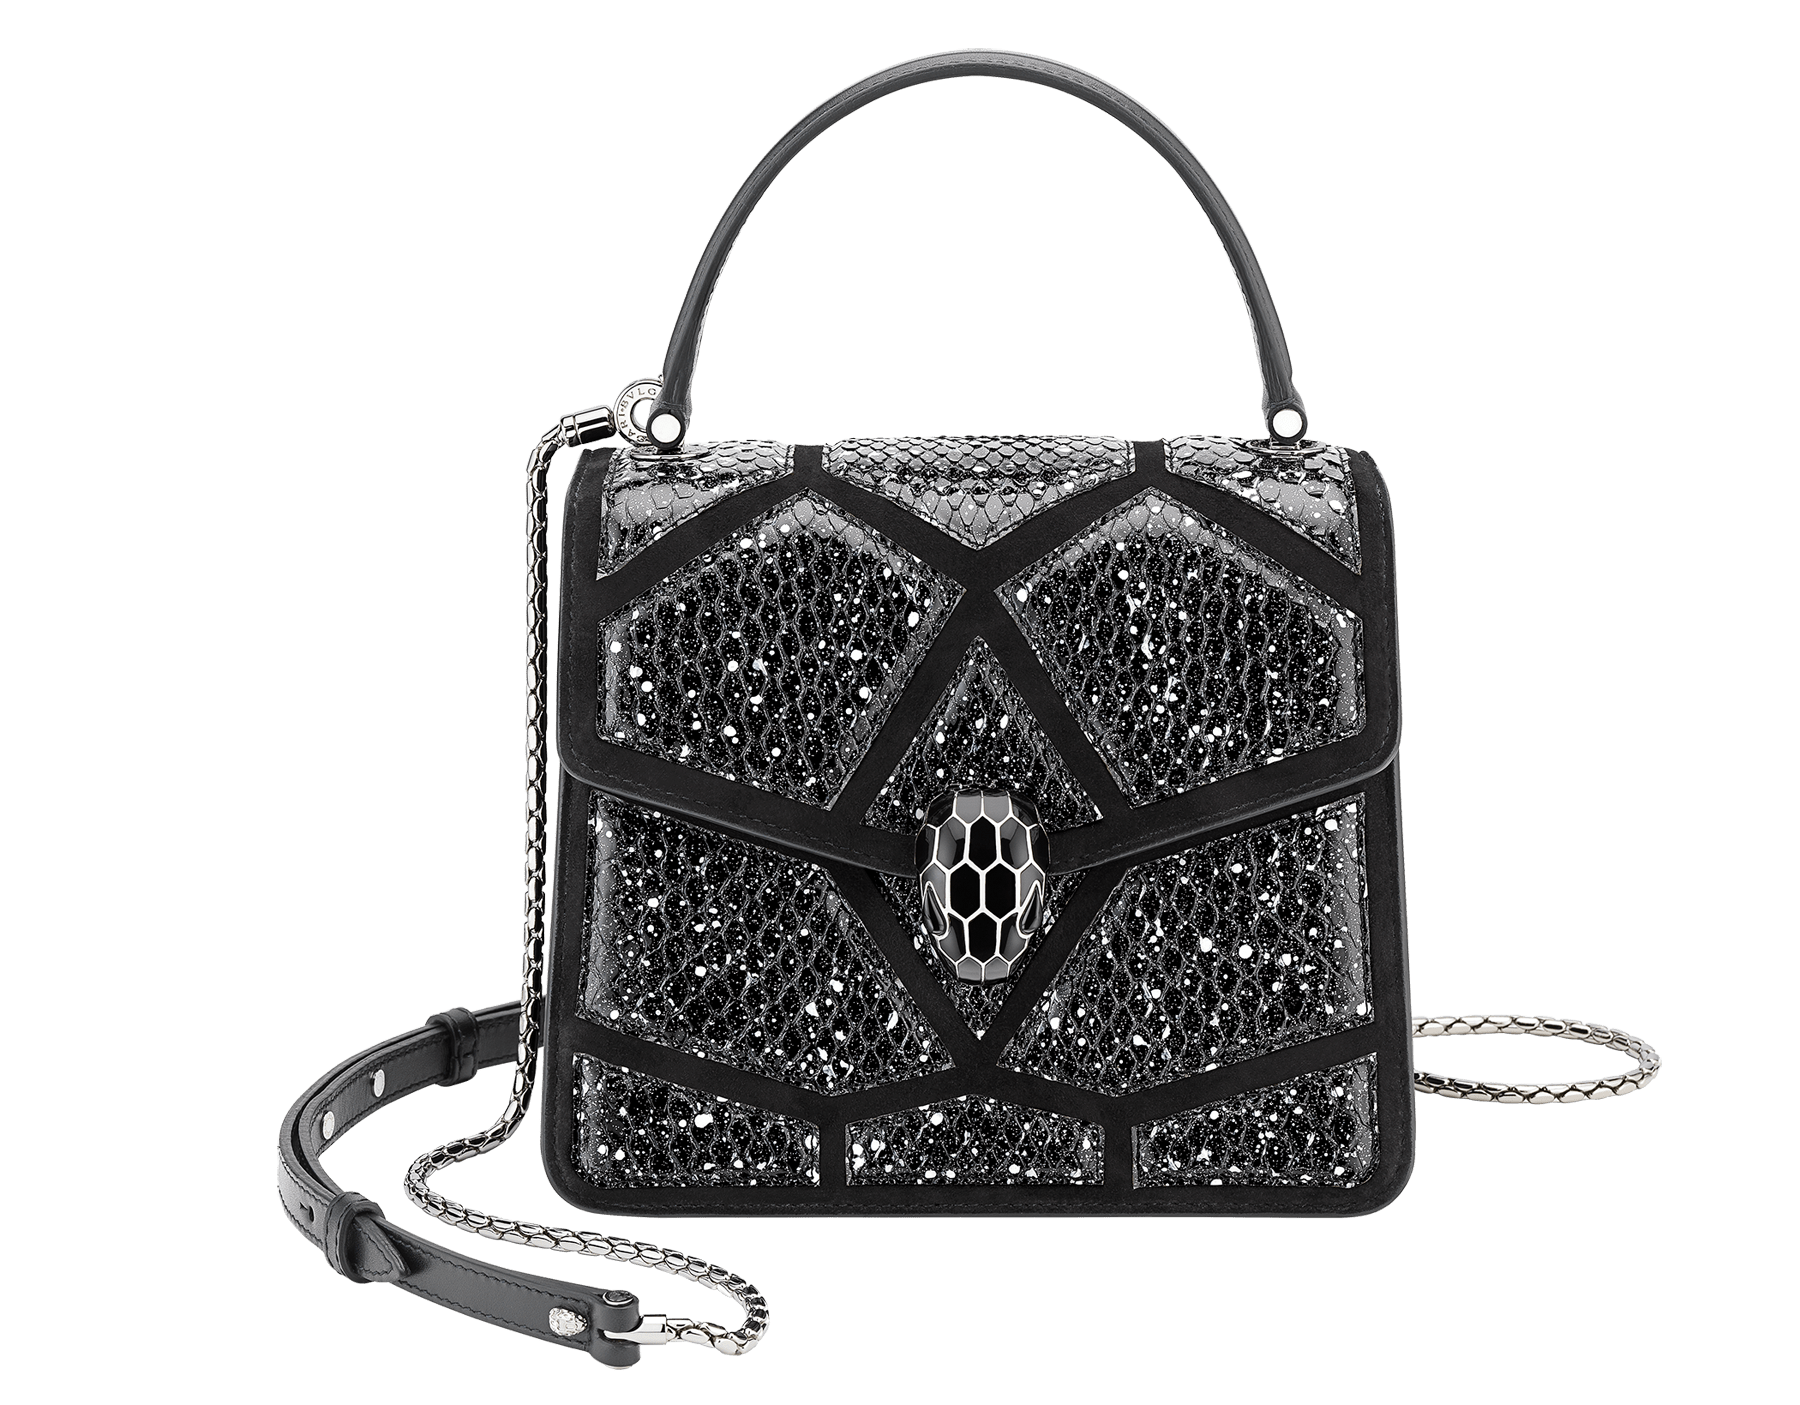 Serpenti Forever crossbody bag in black and white Stardust Cosmic python skin and black calf leather. Snakehead closure in palladium plated brass decorated with black enamel, and black onyx eyes. 288223 image 1